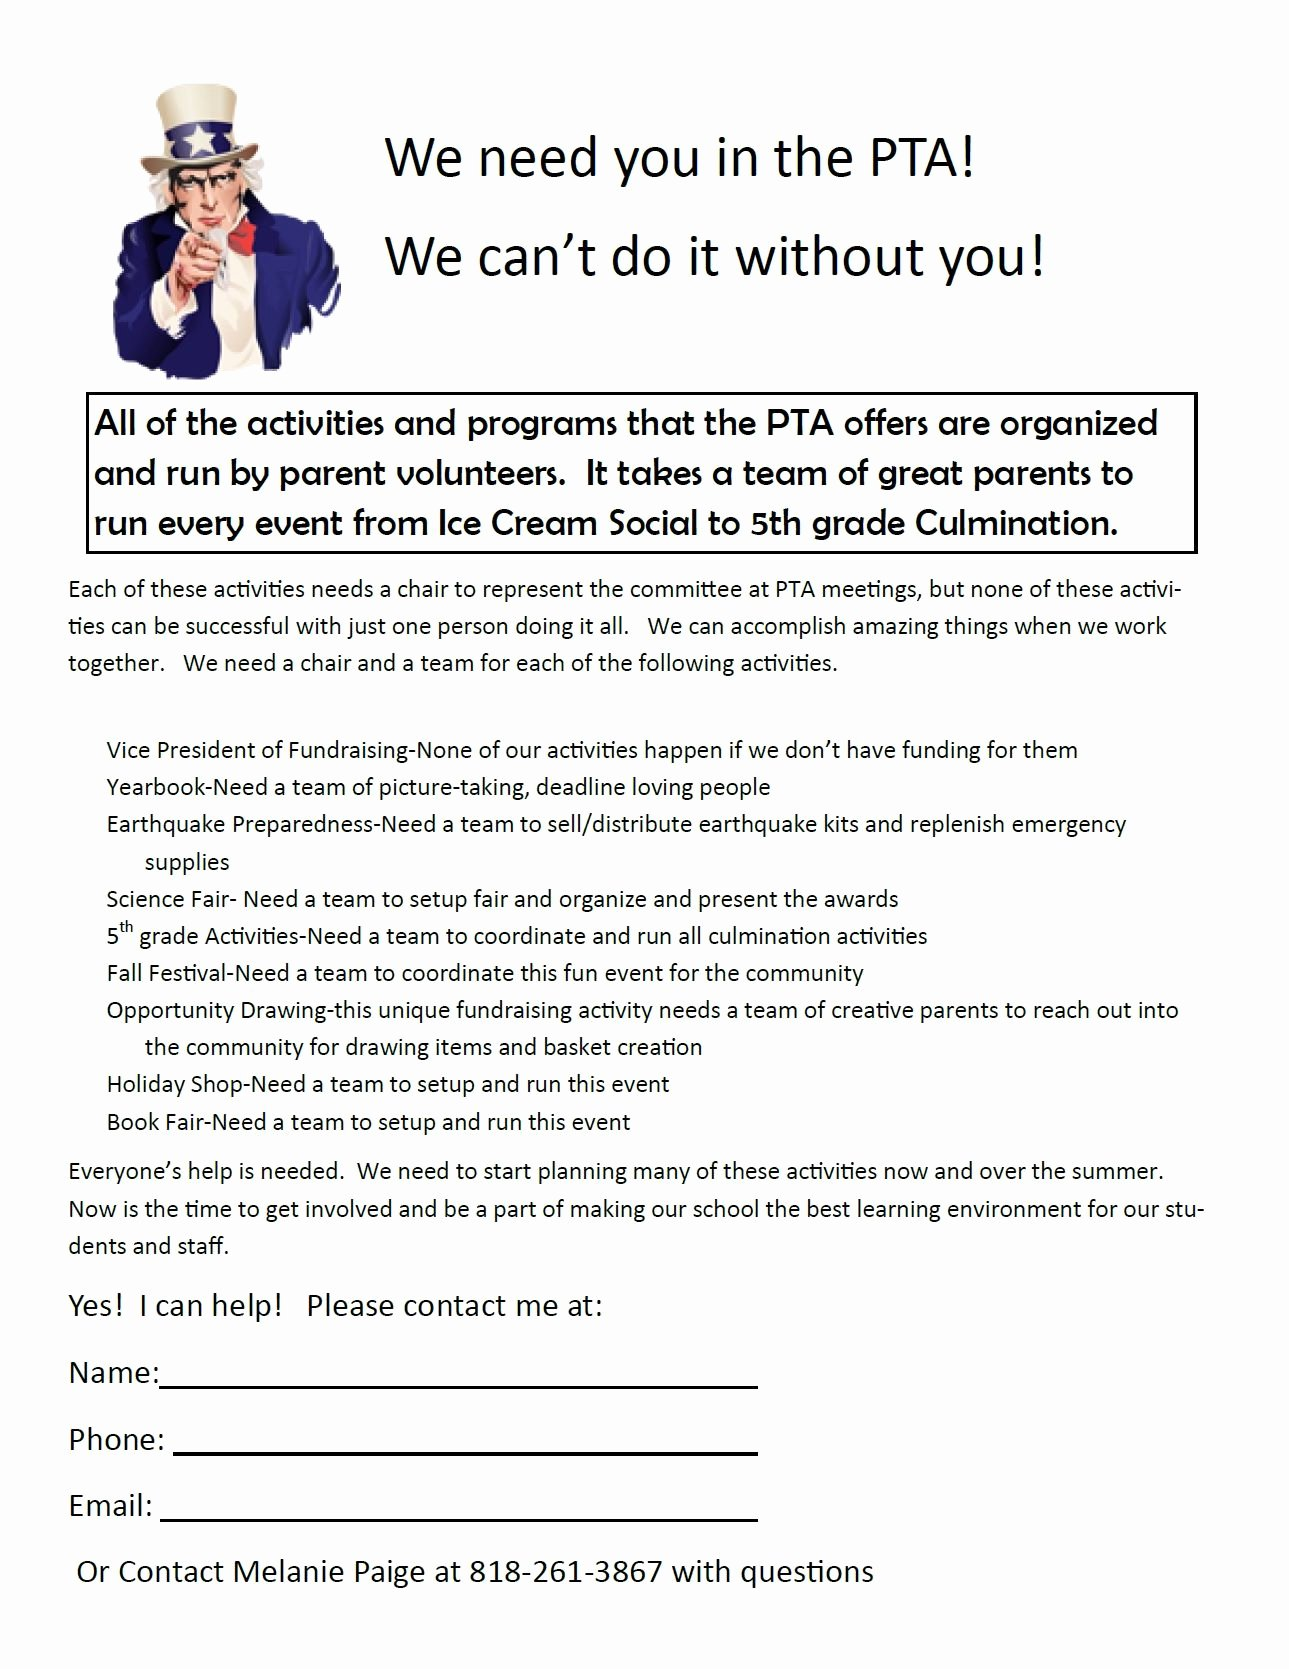 Parent Volunteer form Template New High School Parent Volunteer Request Letter Google